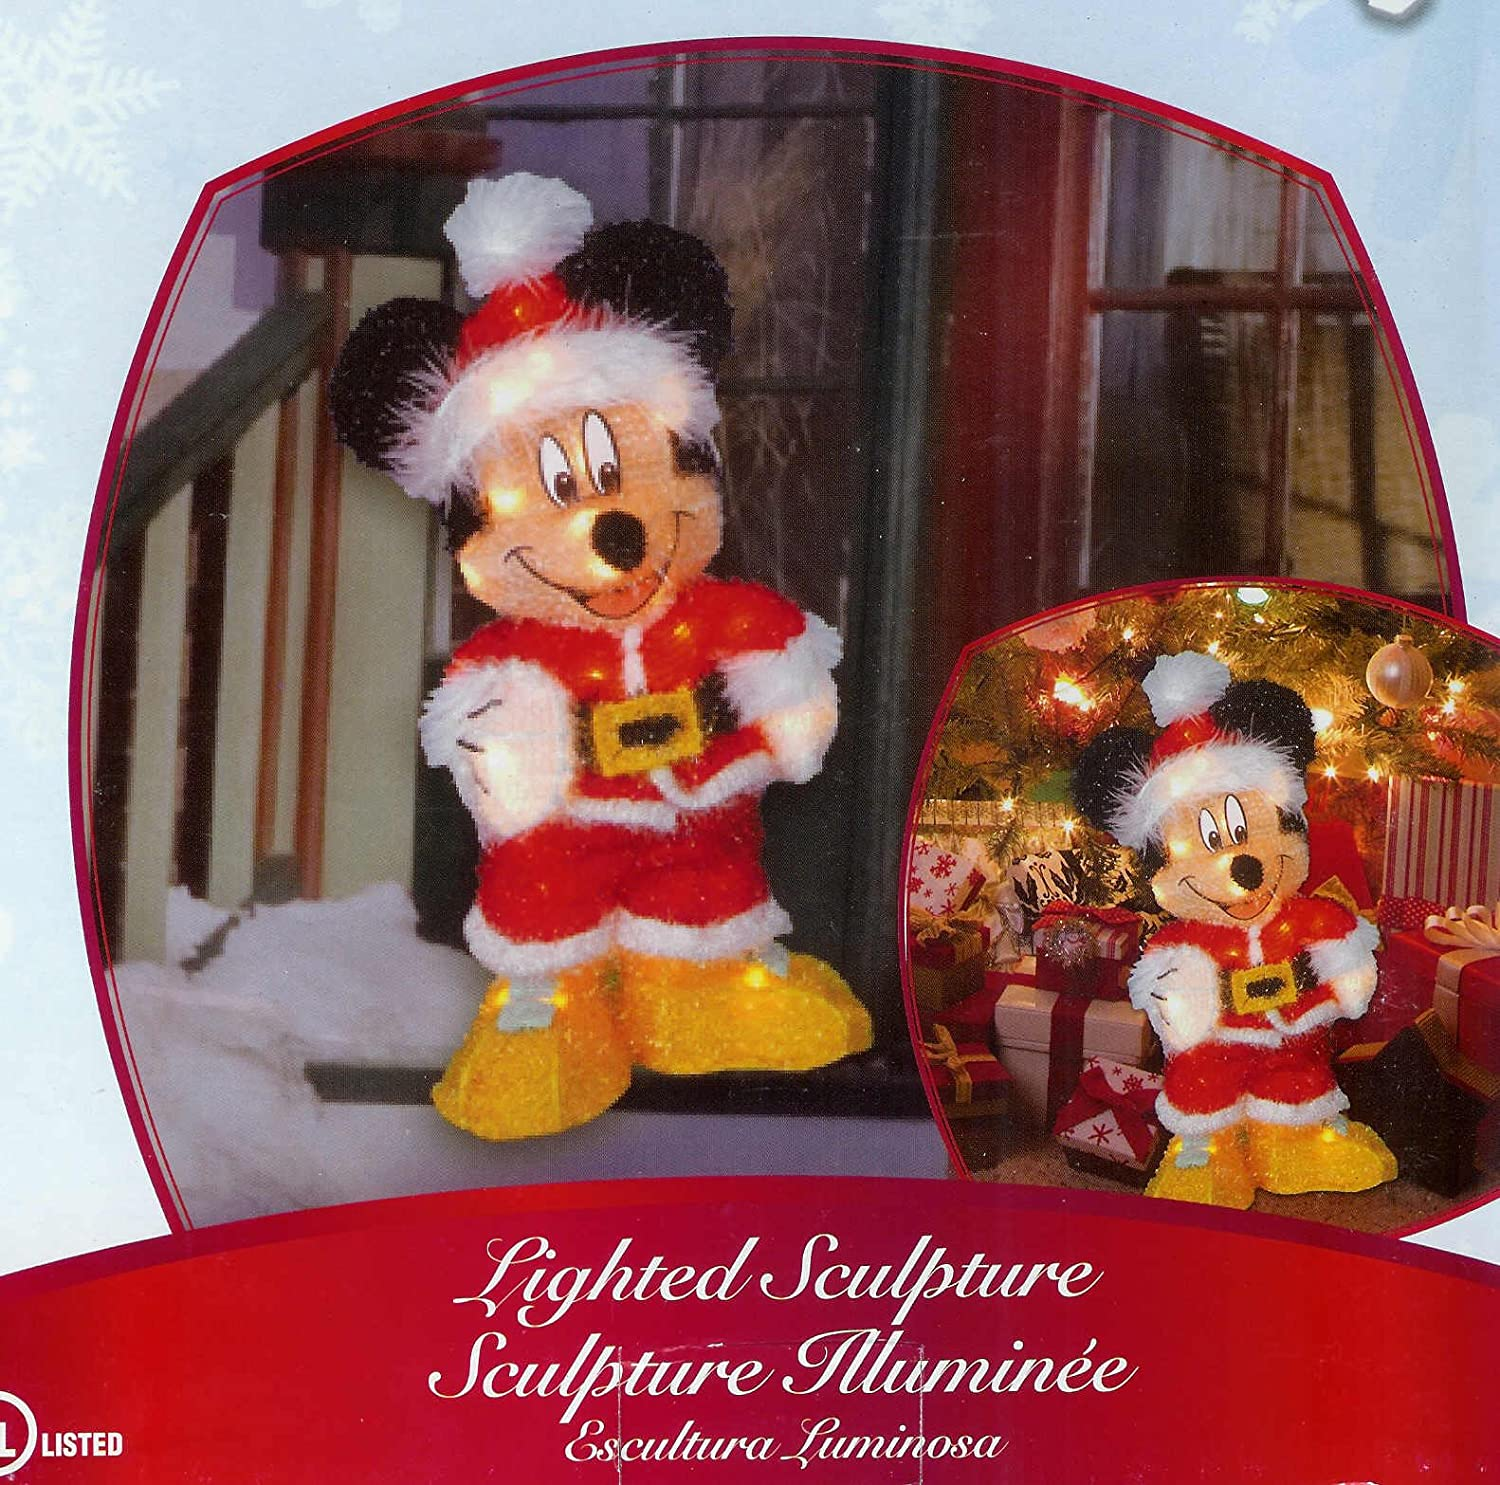 Mickey Mouse Disney Lighted Christmas Sculpture